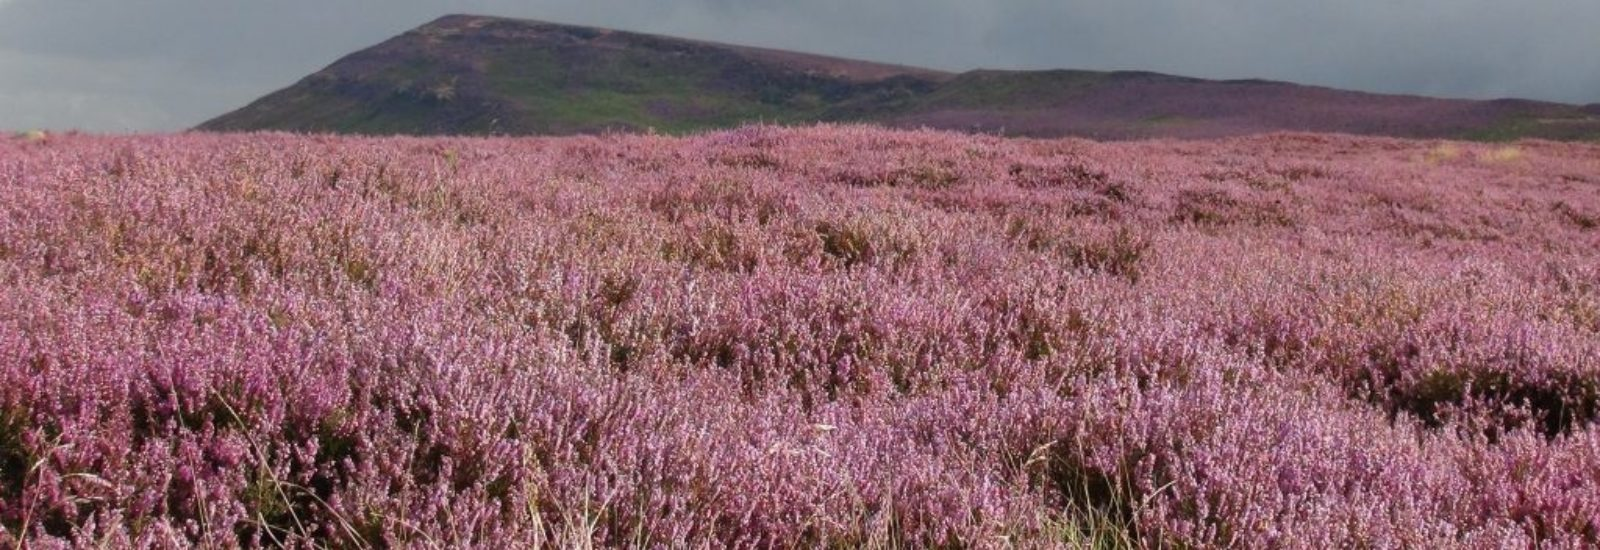 Heather Moorland In Autumn